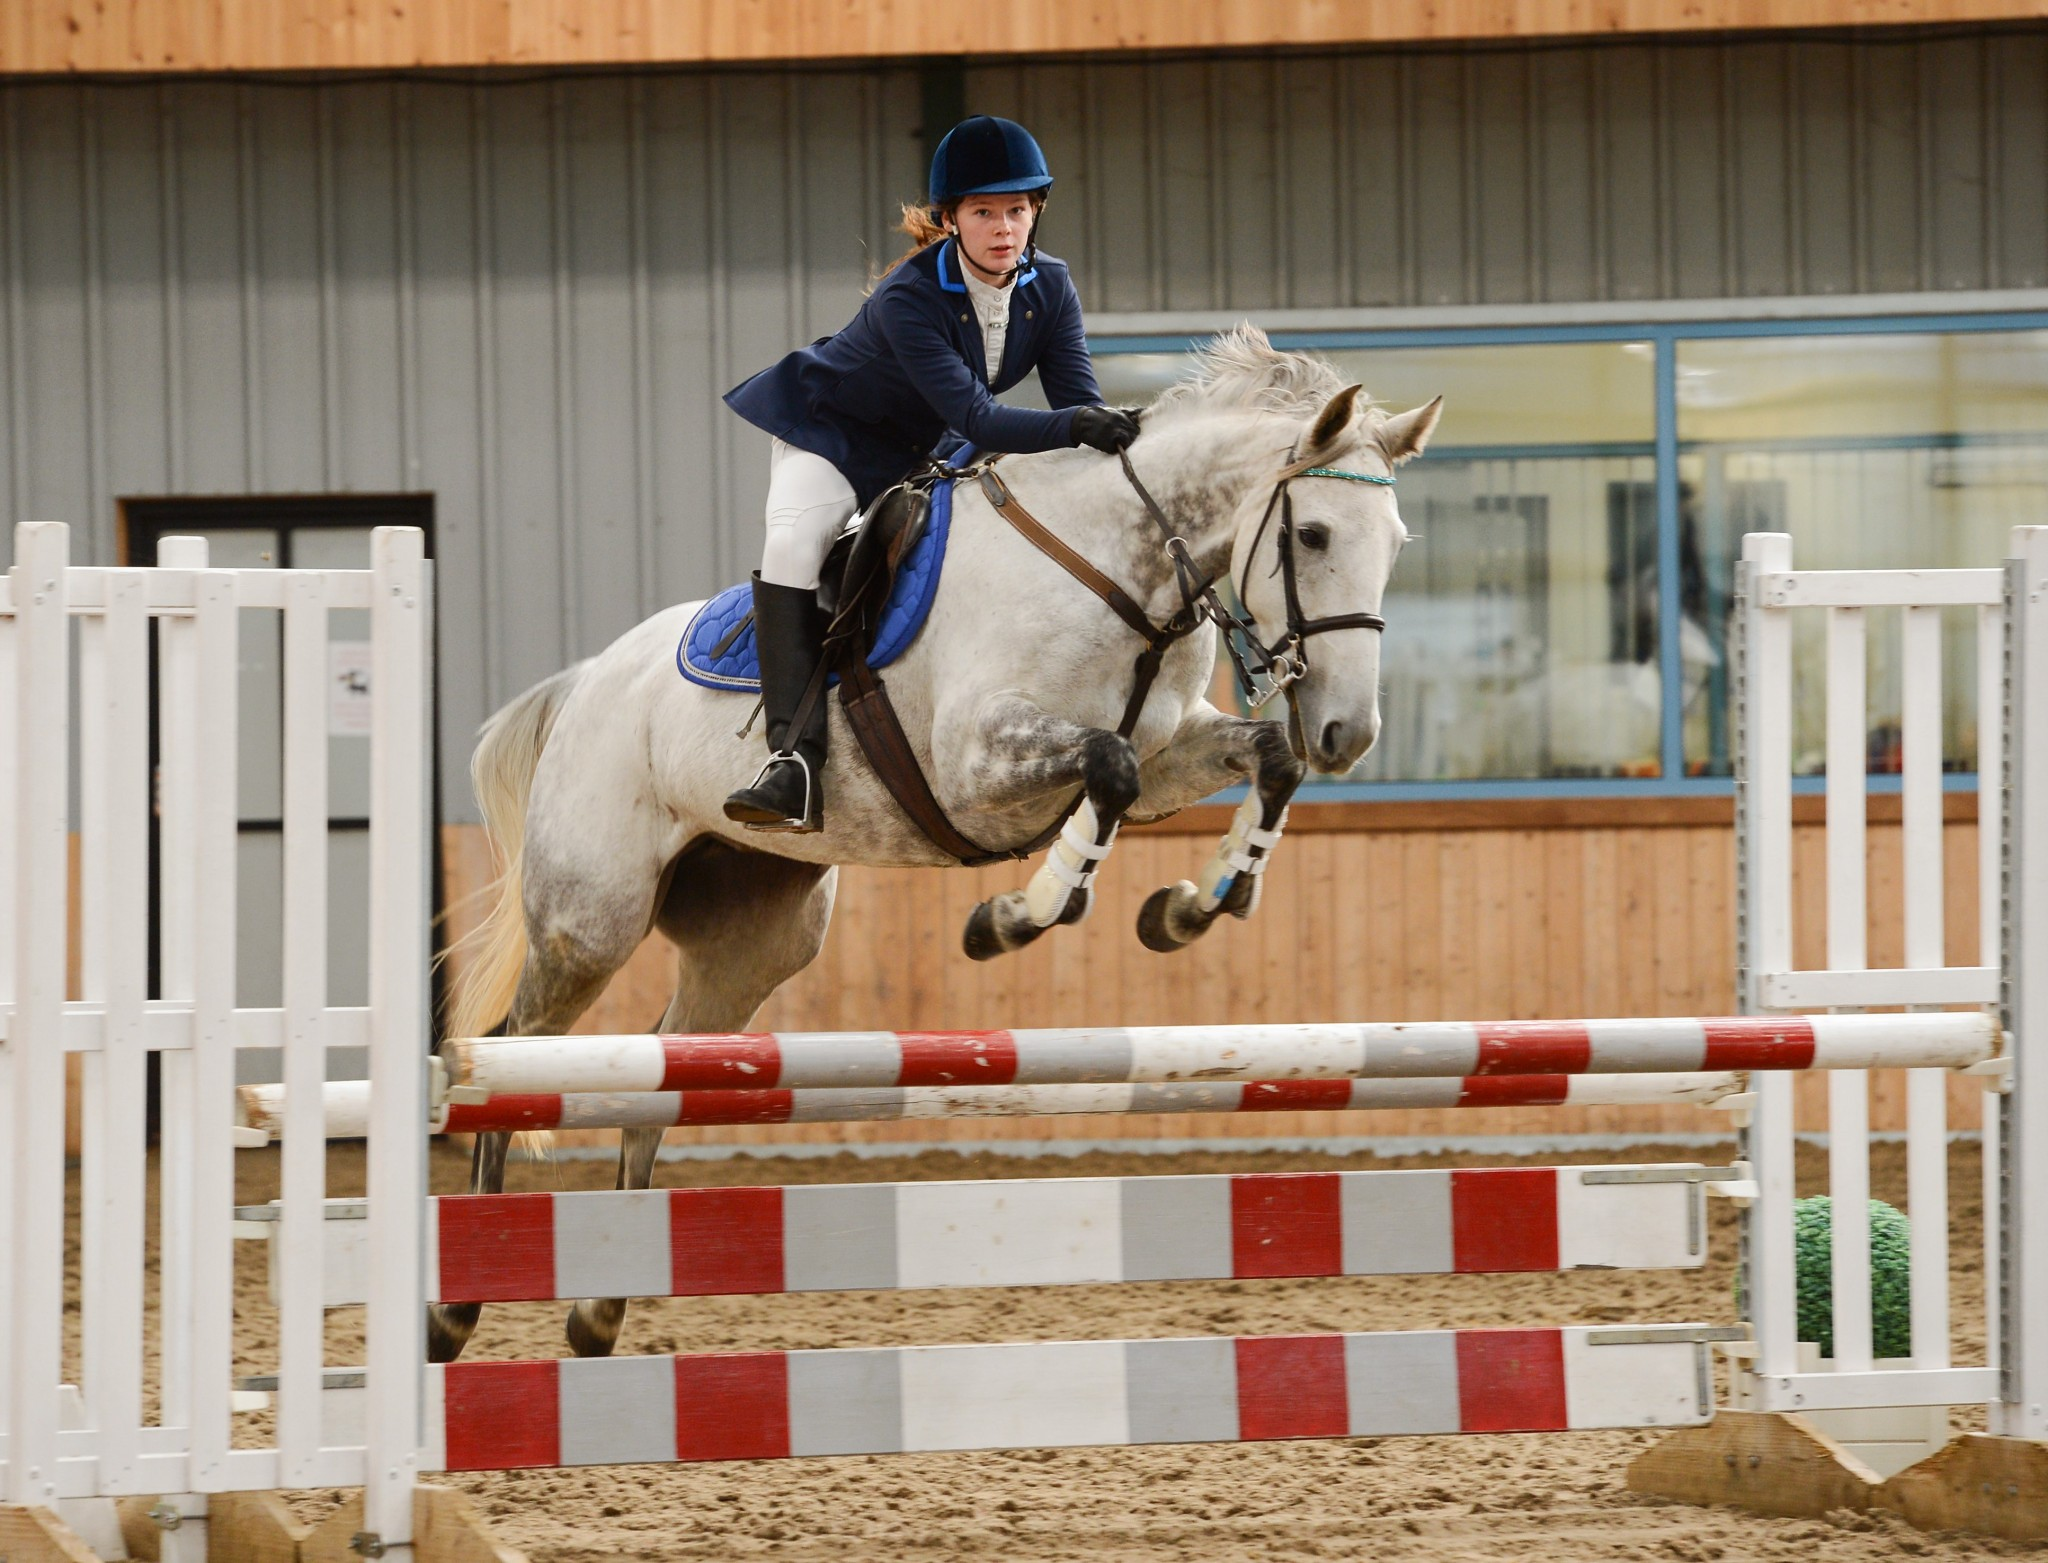 Amelia Cox Diamond Jessica Houghton Hall EC Credit Andy Fountain Photography - Lincolnshire's Amelia Cox is Unbeatable in Dodson & Horrell 0.95m National Amateur Second Round at Houghton Hall Equestrian Centre